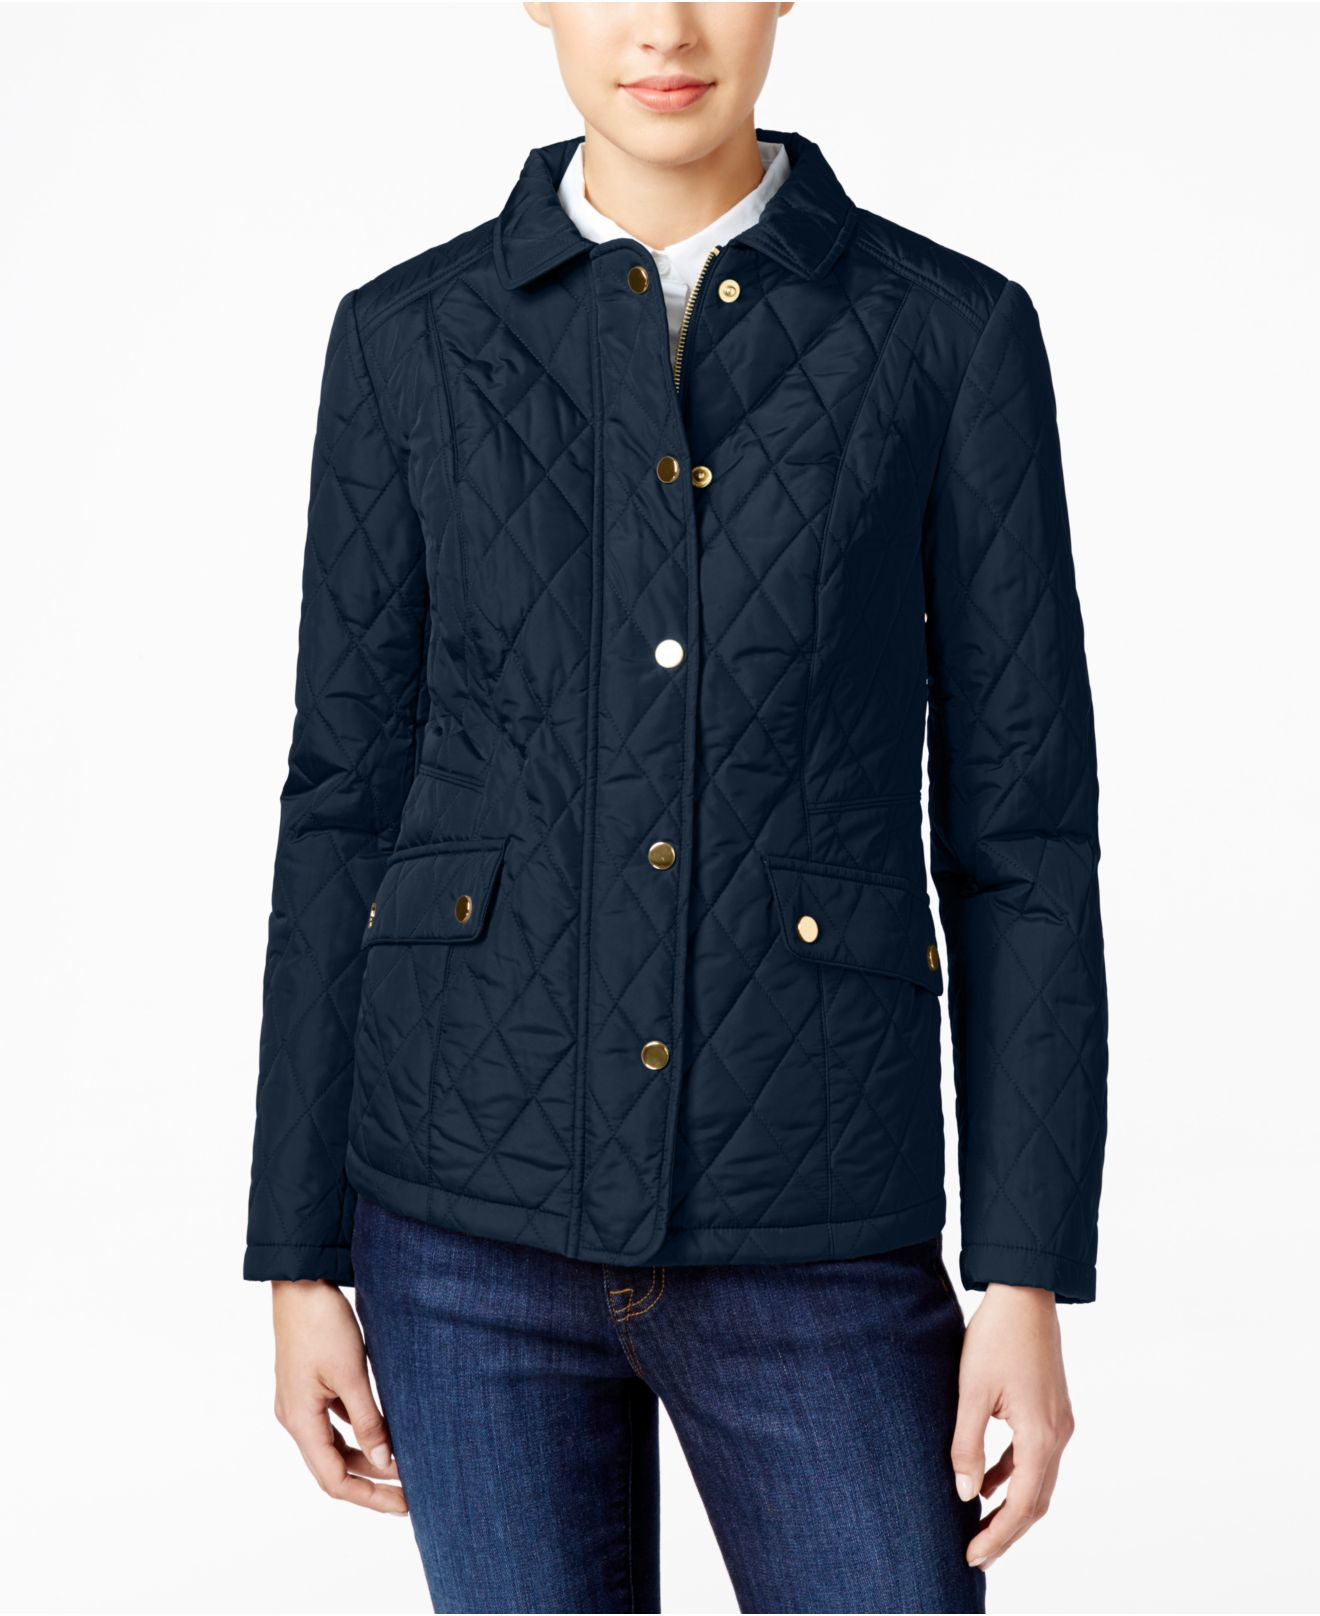 Charter club Quilted Water-resistant Jacket in Blue